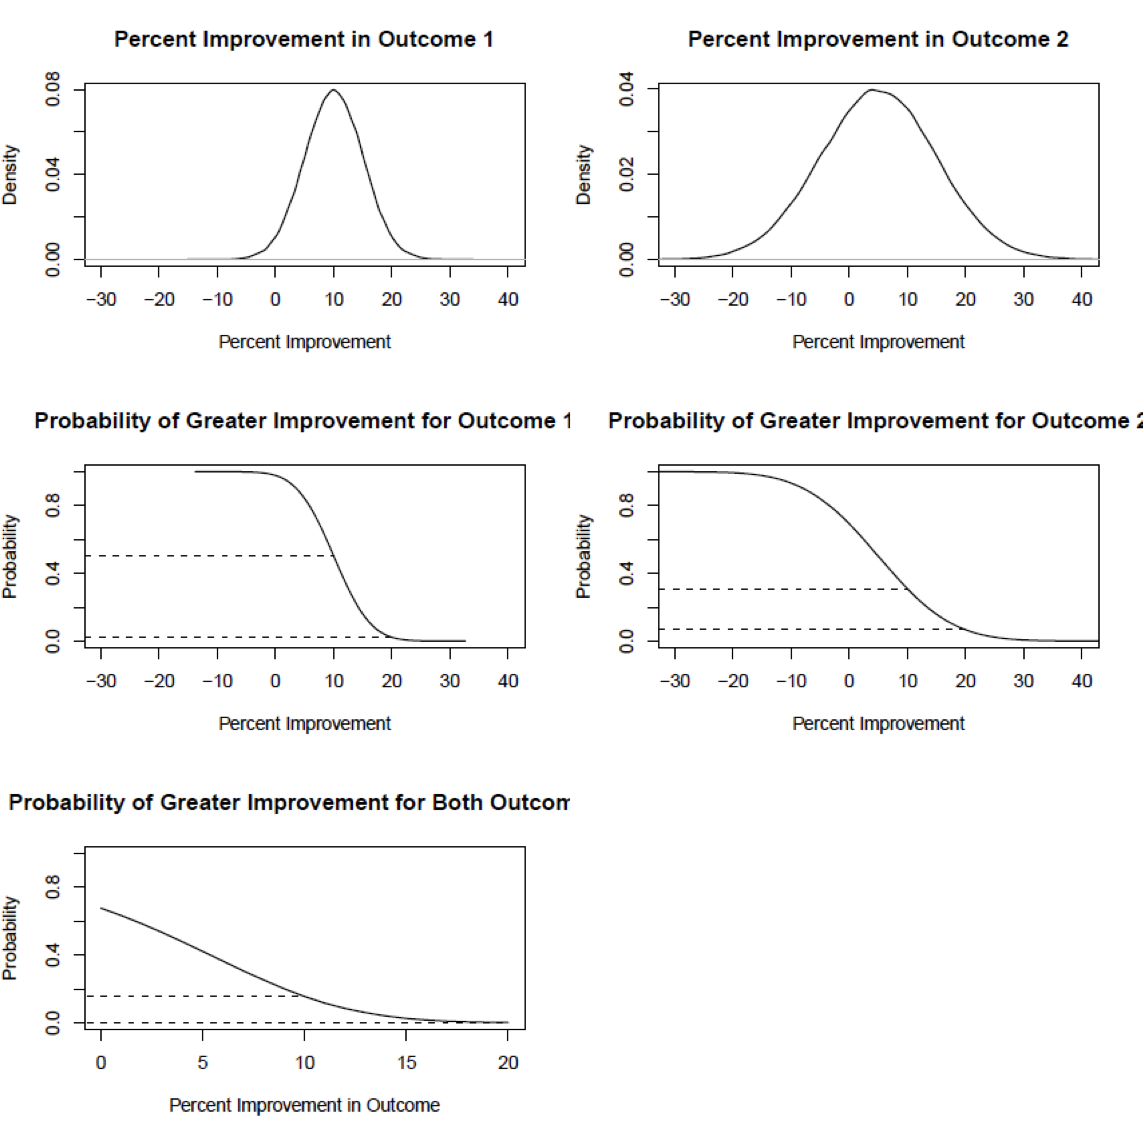 Figure 4-2 shows five plots arranged in three rows with two plots on each of the top rows and one on the bottom. The plots in the top row (titled Outcome 1 and Outcome 2) describe posterior distributions in percent improvement (treatment effect) for two outcomes. For outcome 1, the curve is centered at 10 percent improvement and most of the distributon is between about 0 and 20 percent improvement. Ir corresponds to a normal distribuiton with mean 10 and standard deviation 5. For outcome 2, the curve is centered at 5 with most of the distrbiution between -20 and 30. Ir corresponds to a normal distribuiton with mean 5 and standard deviation 10. The plots in the middle row show the cumulative probability (y-axis) that each outcome improves by at least the percentage amount on the horizontal axis. The curve for outcome 1 starts at a probabiliity of 1 and begins to decline when the percent improvement on the x-axis is -10. It declines in a reverse S-shape until it reaches 0 probability at about 20. Two dotted lines are drawn: one at y = 0.5 continuing to to where the curve is at x=10 and the other near y = 0 continuing over to where the curve is at x=20. The second plot is of a similar form. The curve begins to decline from a probability of 1 at x = -30 and reaches y = 0 when x = 30. The dotted lines are drawn at about y = 0.3 and y = 0.05. The plot in the bottom row shows a line depicting the probability that both outcomes improve by at least the amount on the horizontal axis. The line begins at y = 0.7 when x = 0 and declines to y = 0 at about x = 15. Two horizontal dotted lines are drawn at y = 0.18 and y = 0 over to where the curves are for x =10 and x =20 as in the middle row plots.